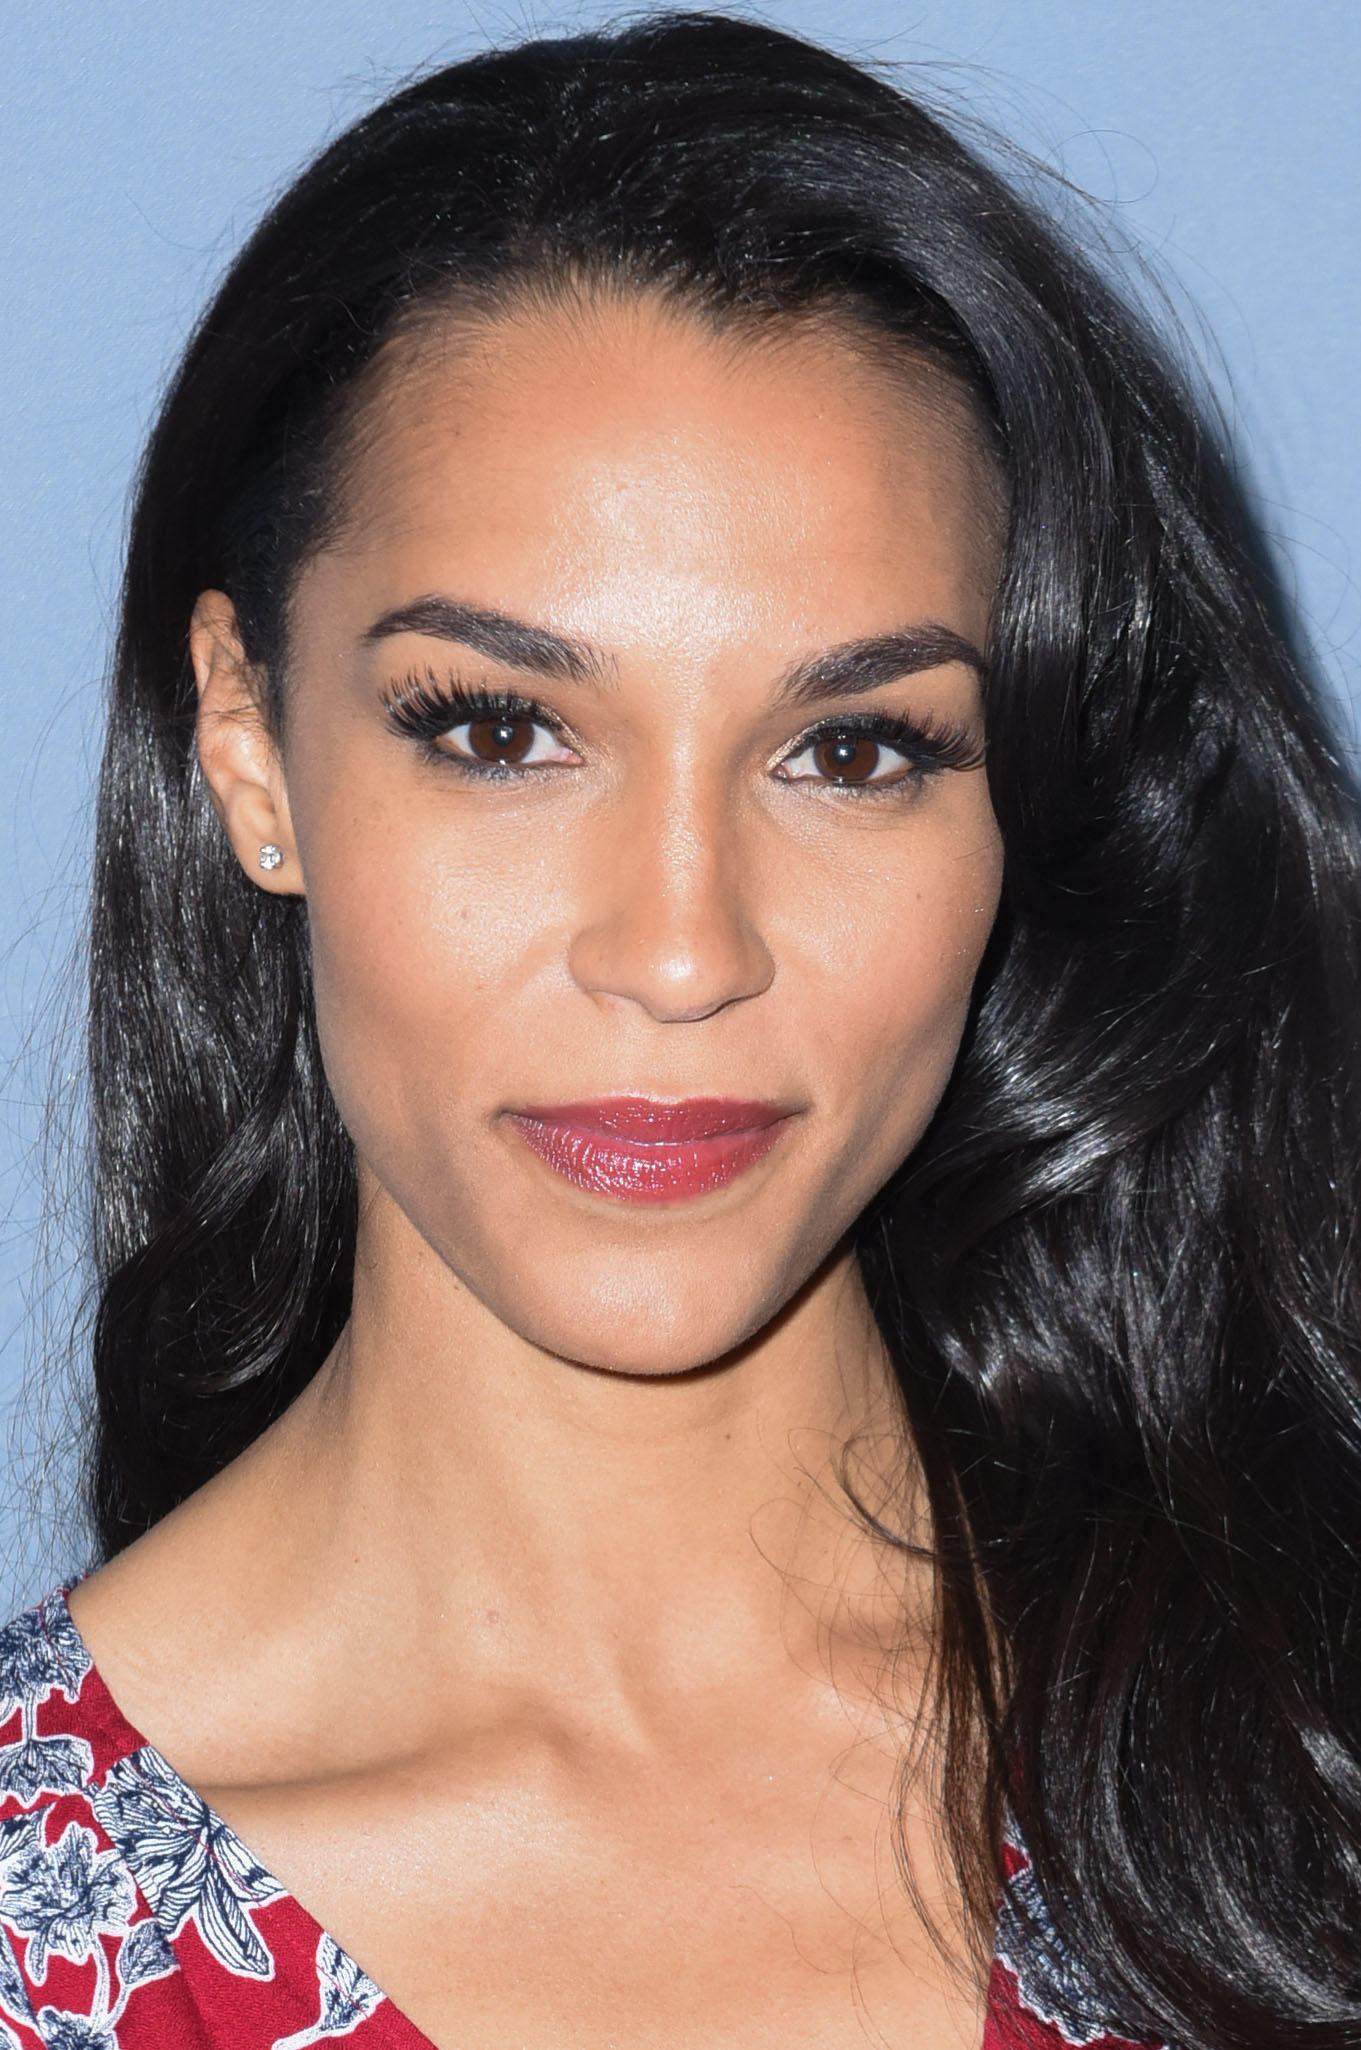 Brooklyn Sudano at a junket for